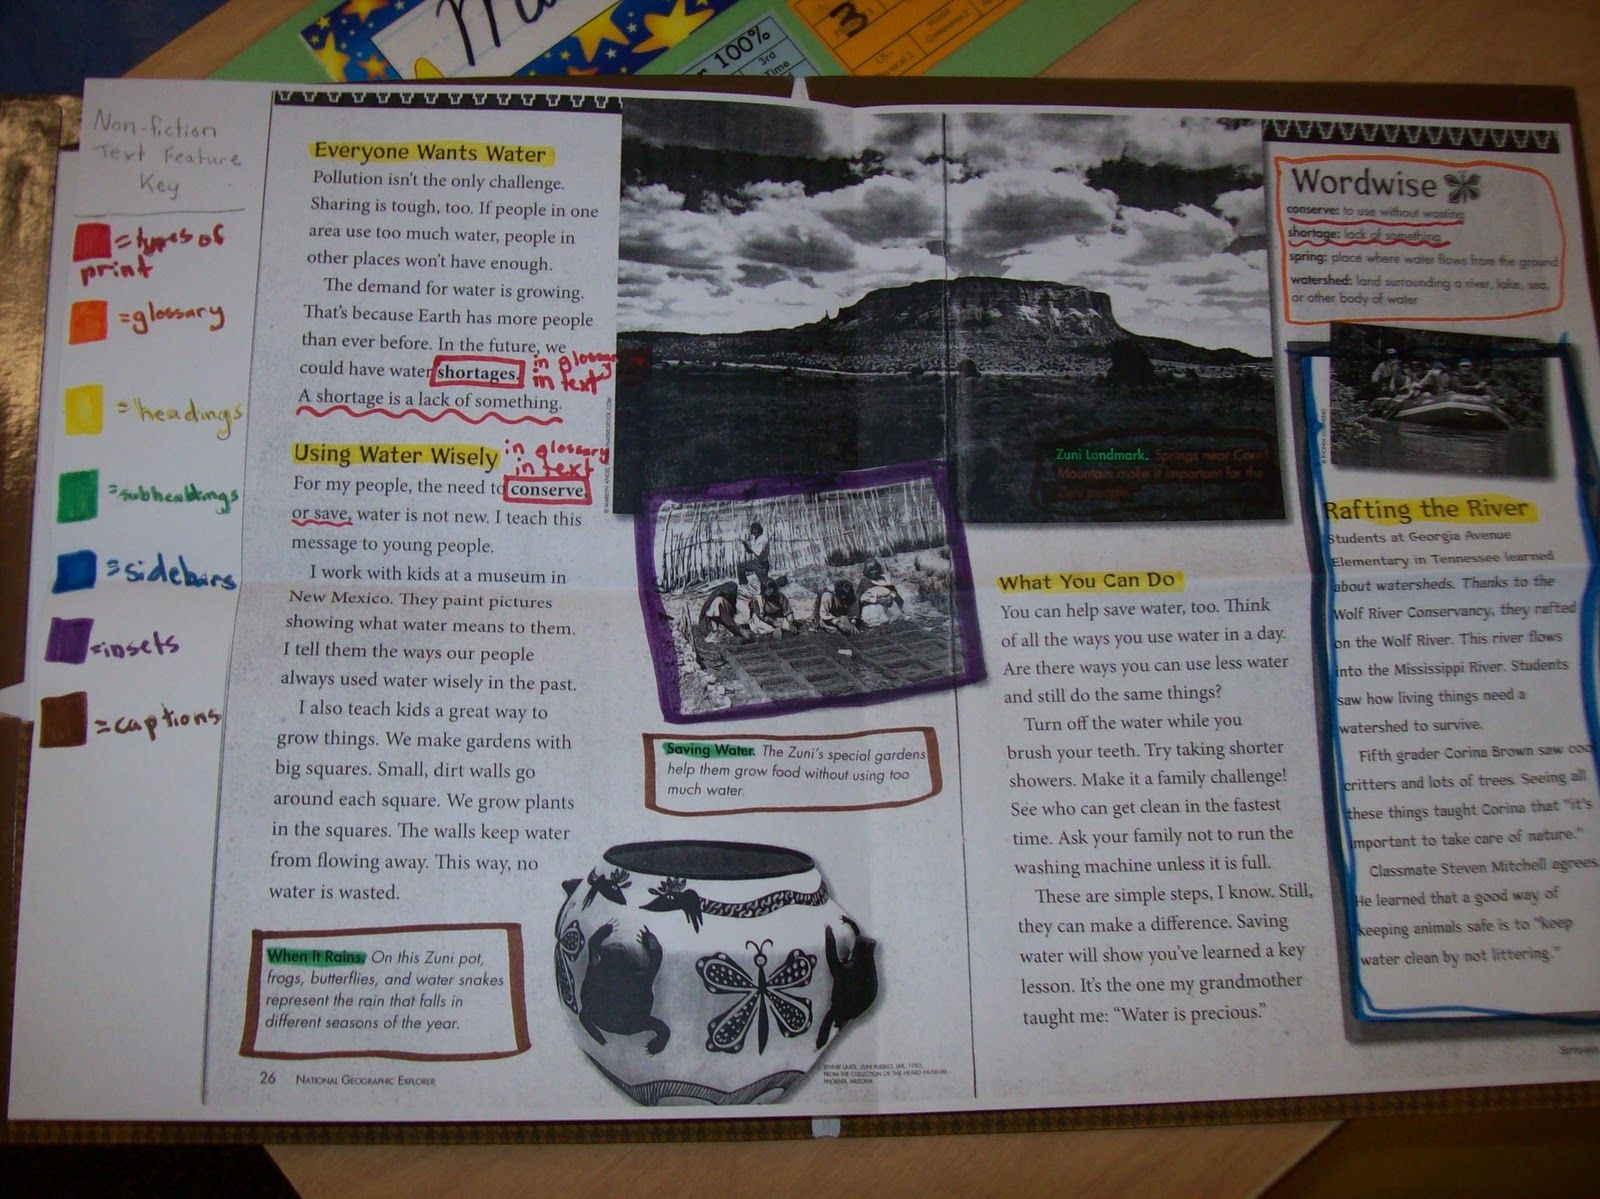 Non Fiction Activity Does Not Link To Site